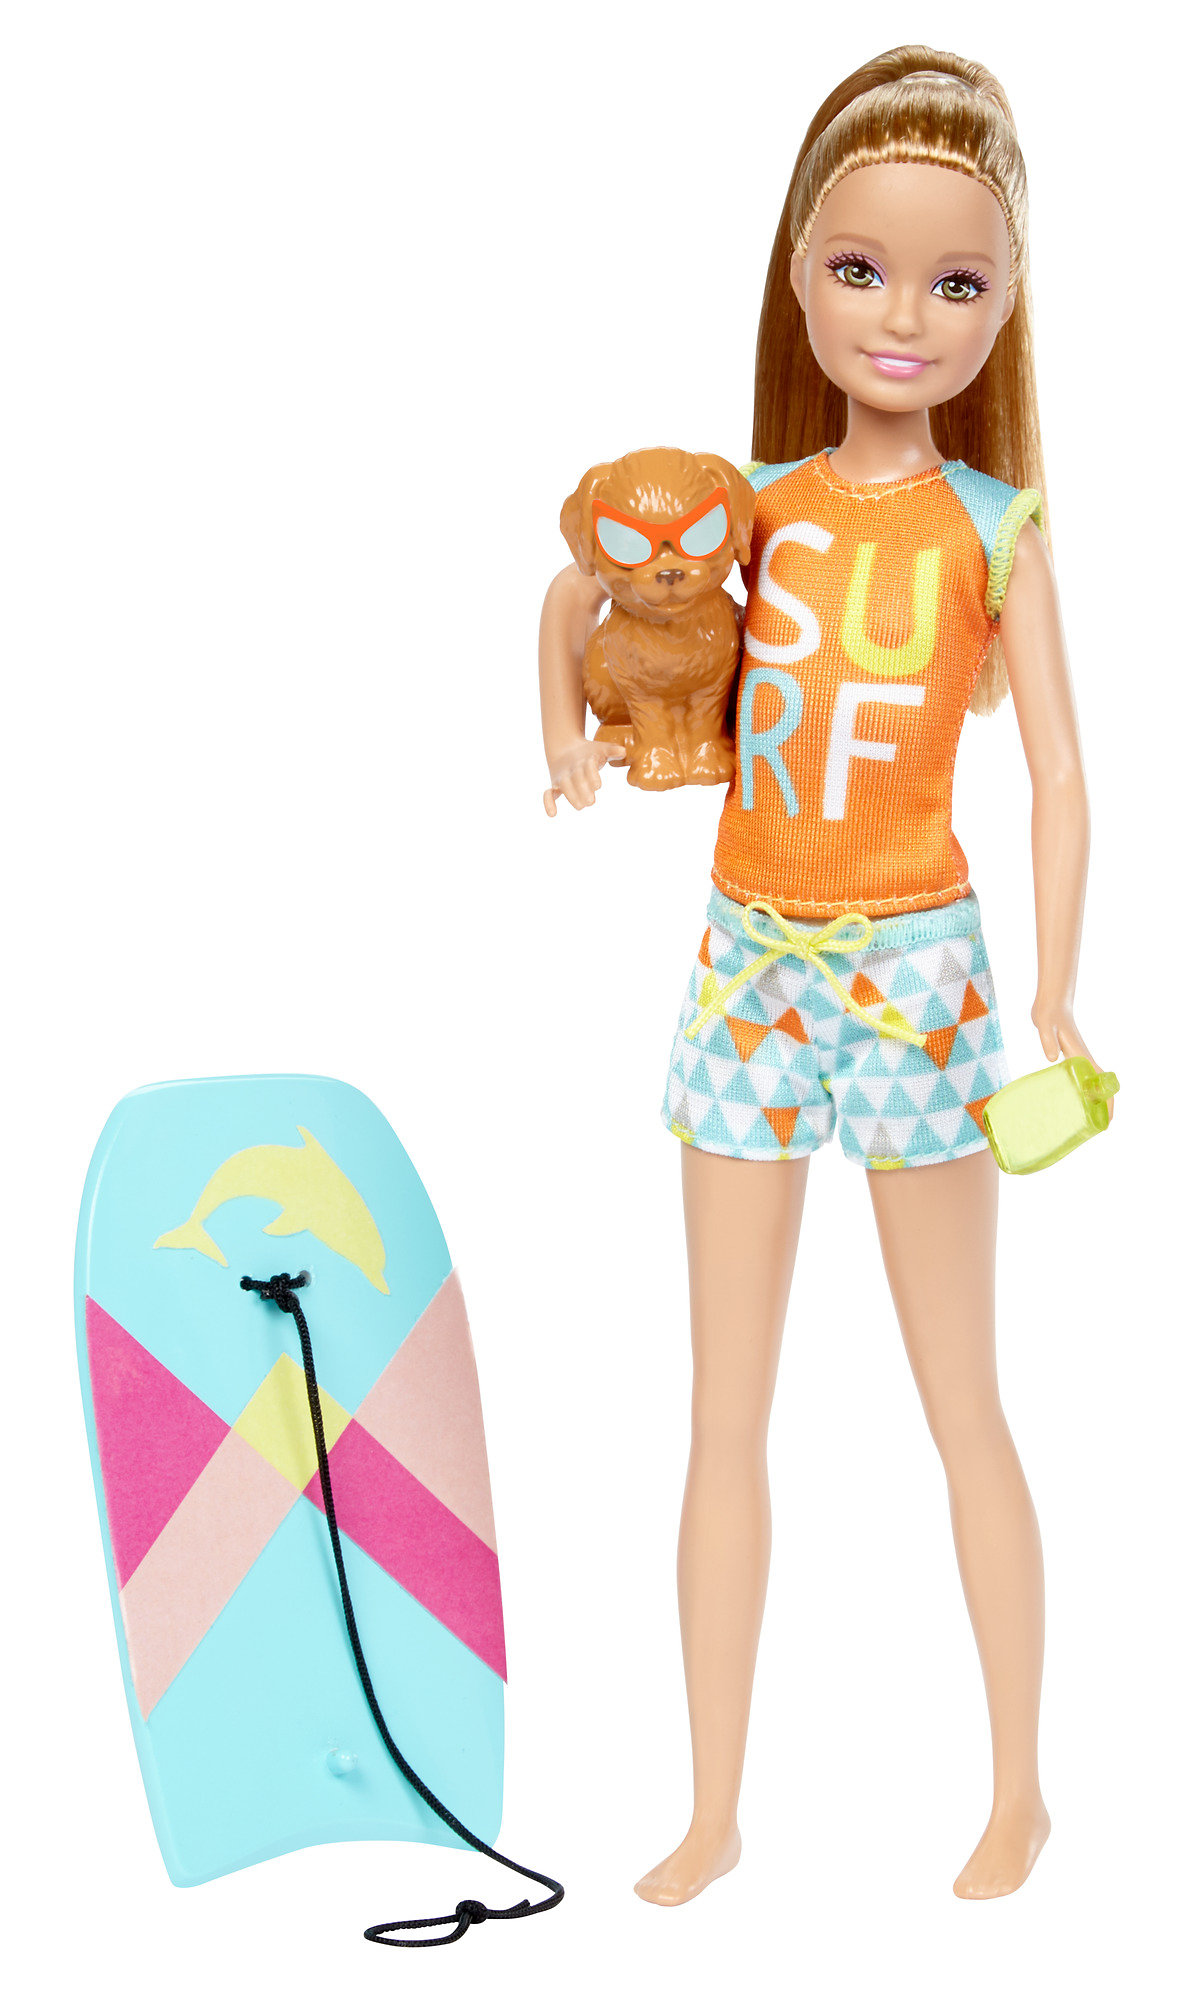 Barbie Dolphin Magic Stacie Doll by Mattel